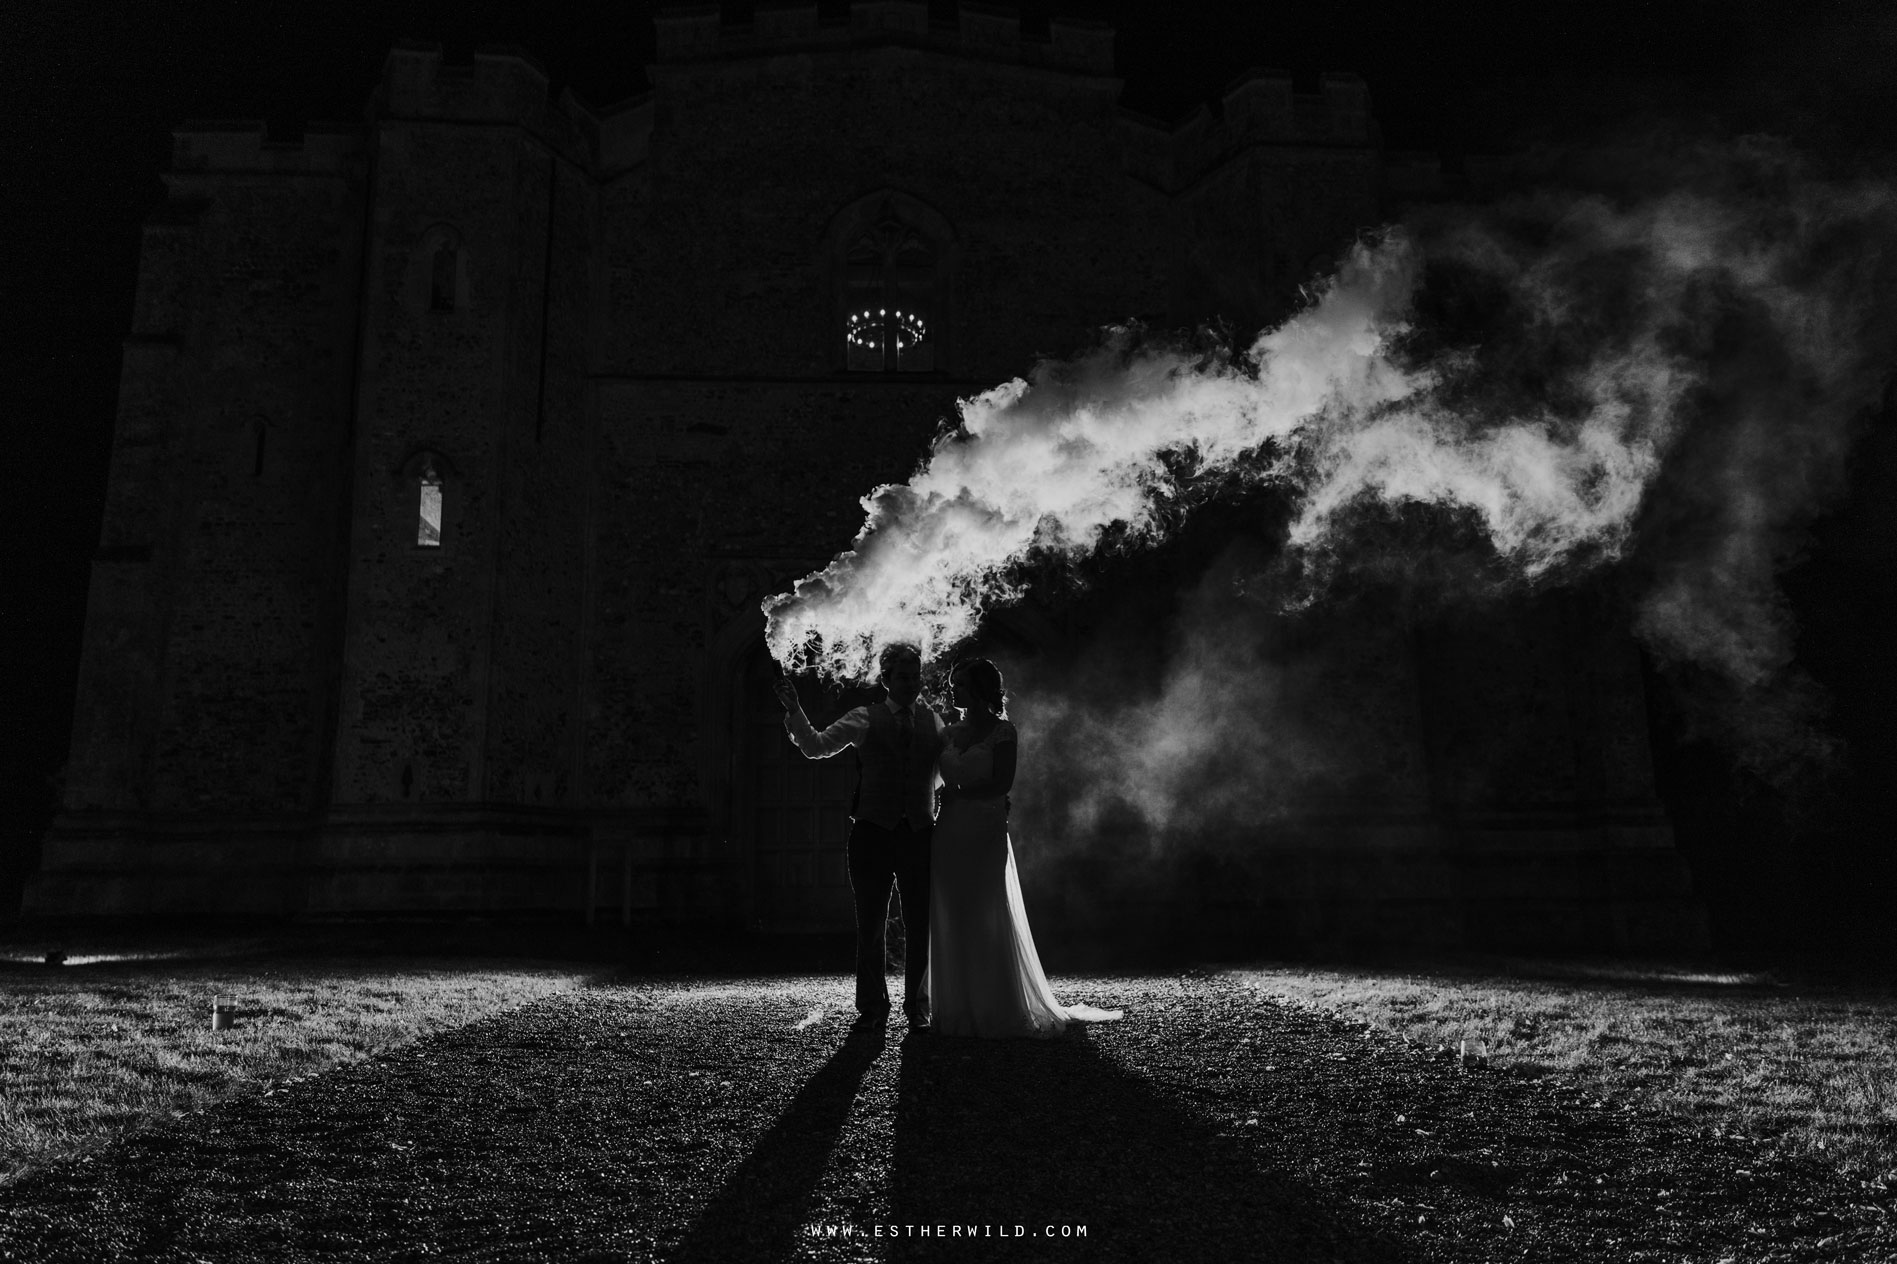 Pentney_Abbey_Wedding_Kings_Lynn_Norfolk_Esther_Wild_Wedding_Photography_IMG_1991-2.jpg